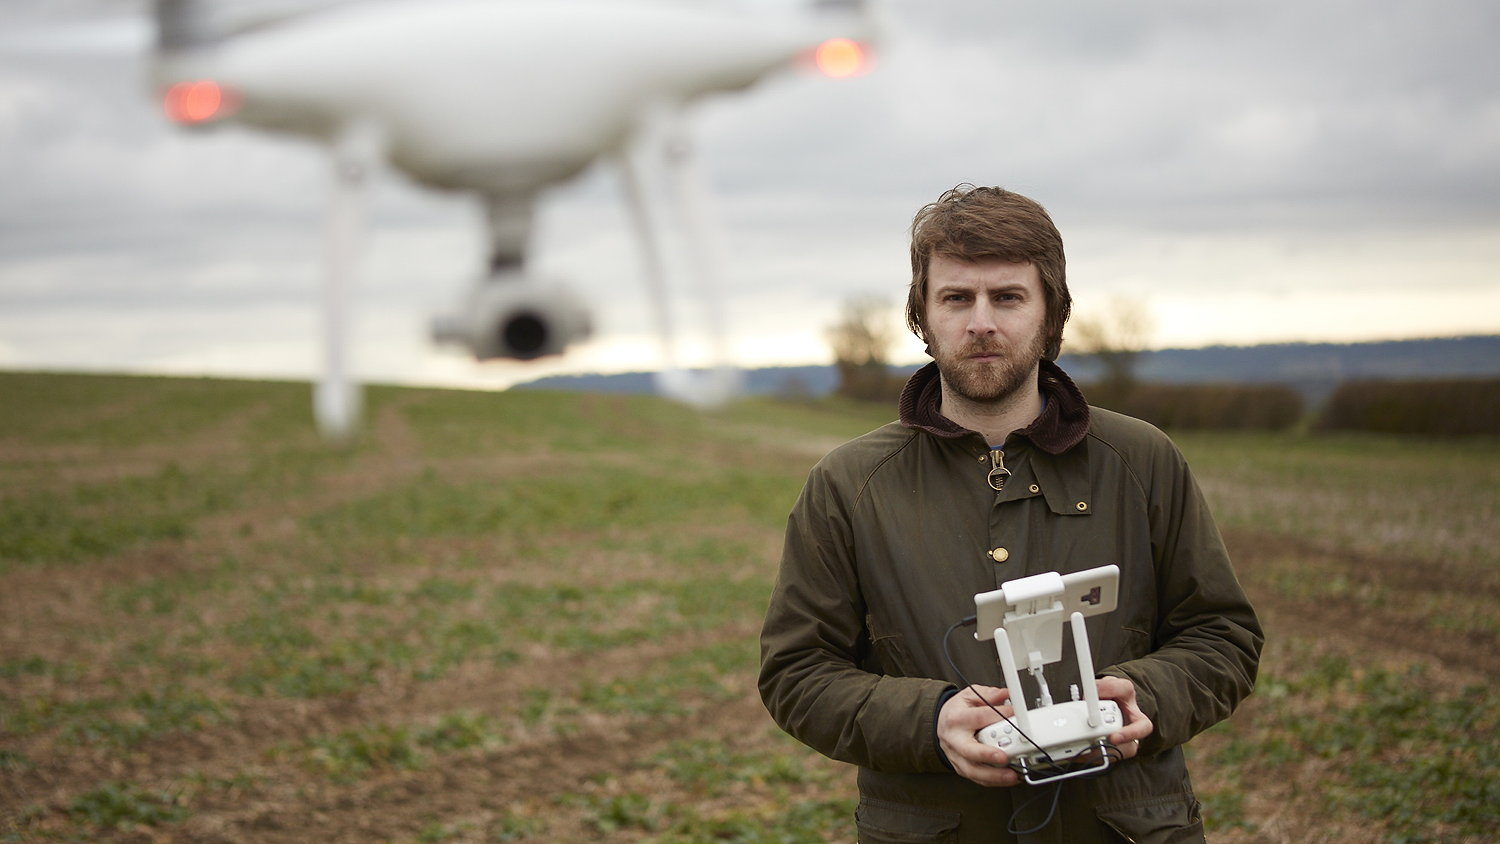 Drone Ag founder Jack Wrangham has crowdfunded £600,000 since 2019 and the company's Skippy Scout software has attracted more than 800 investors